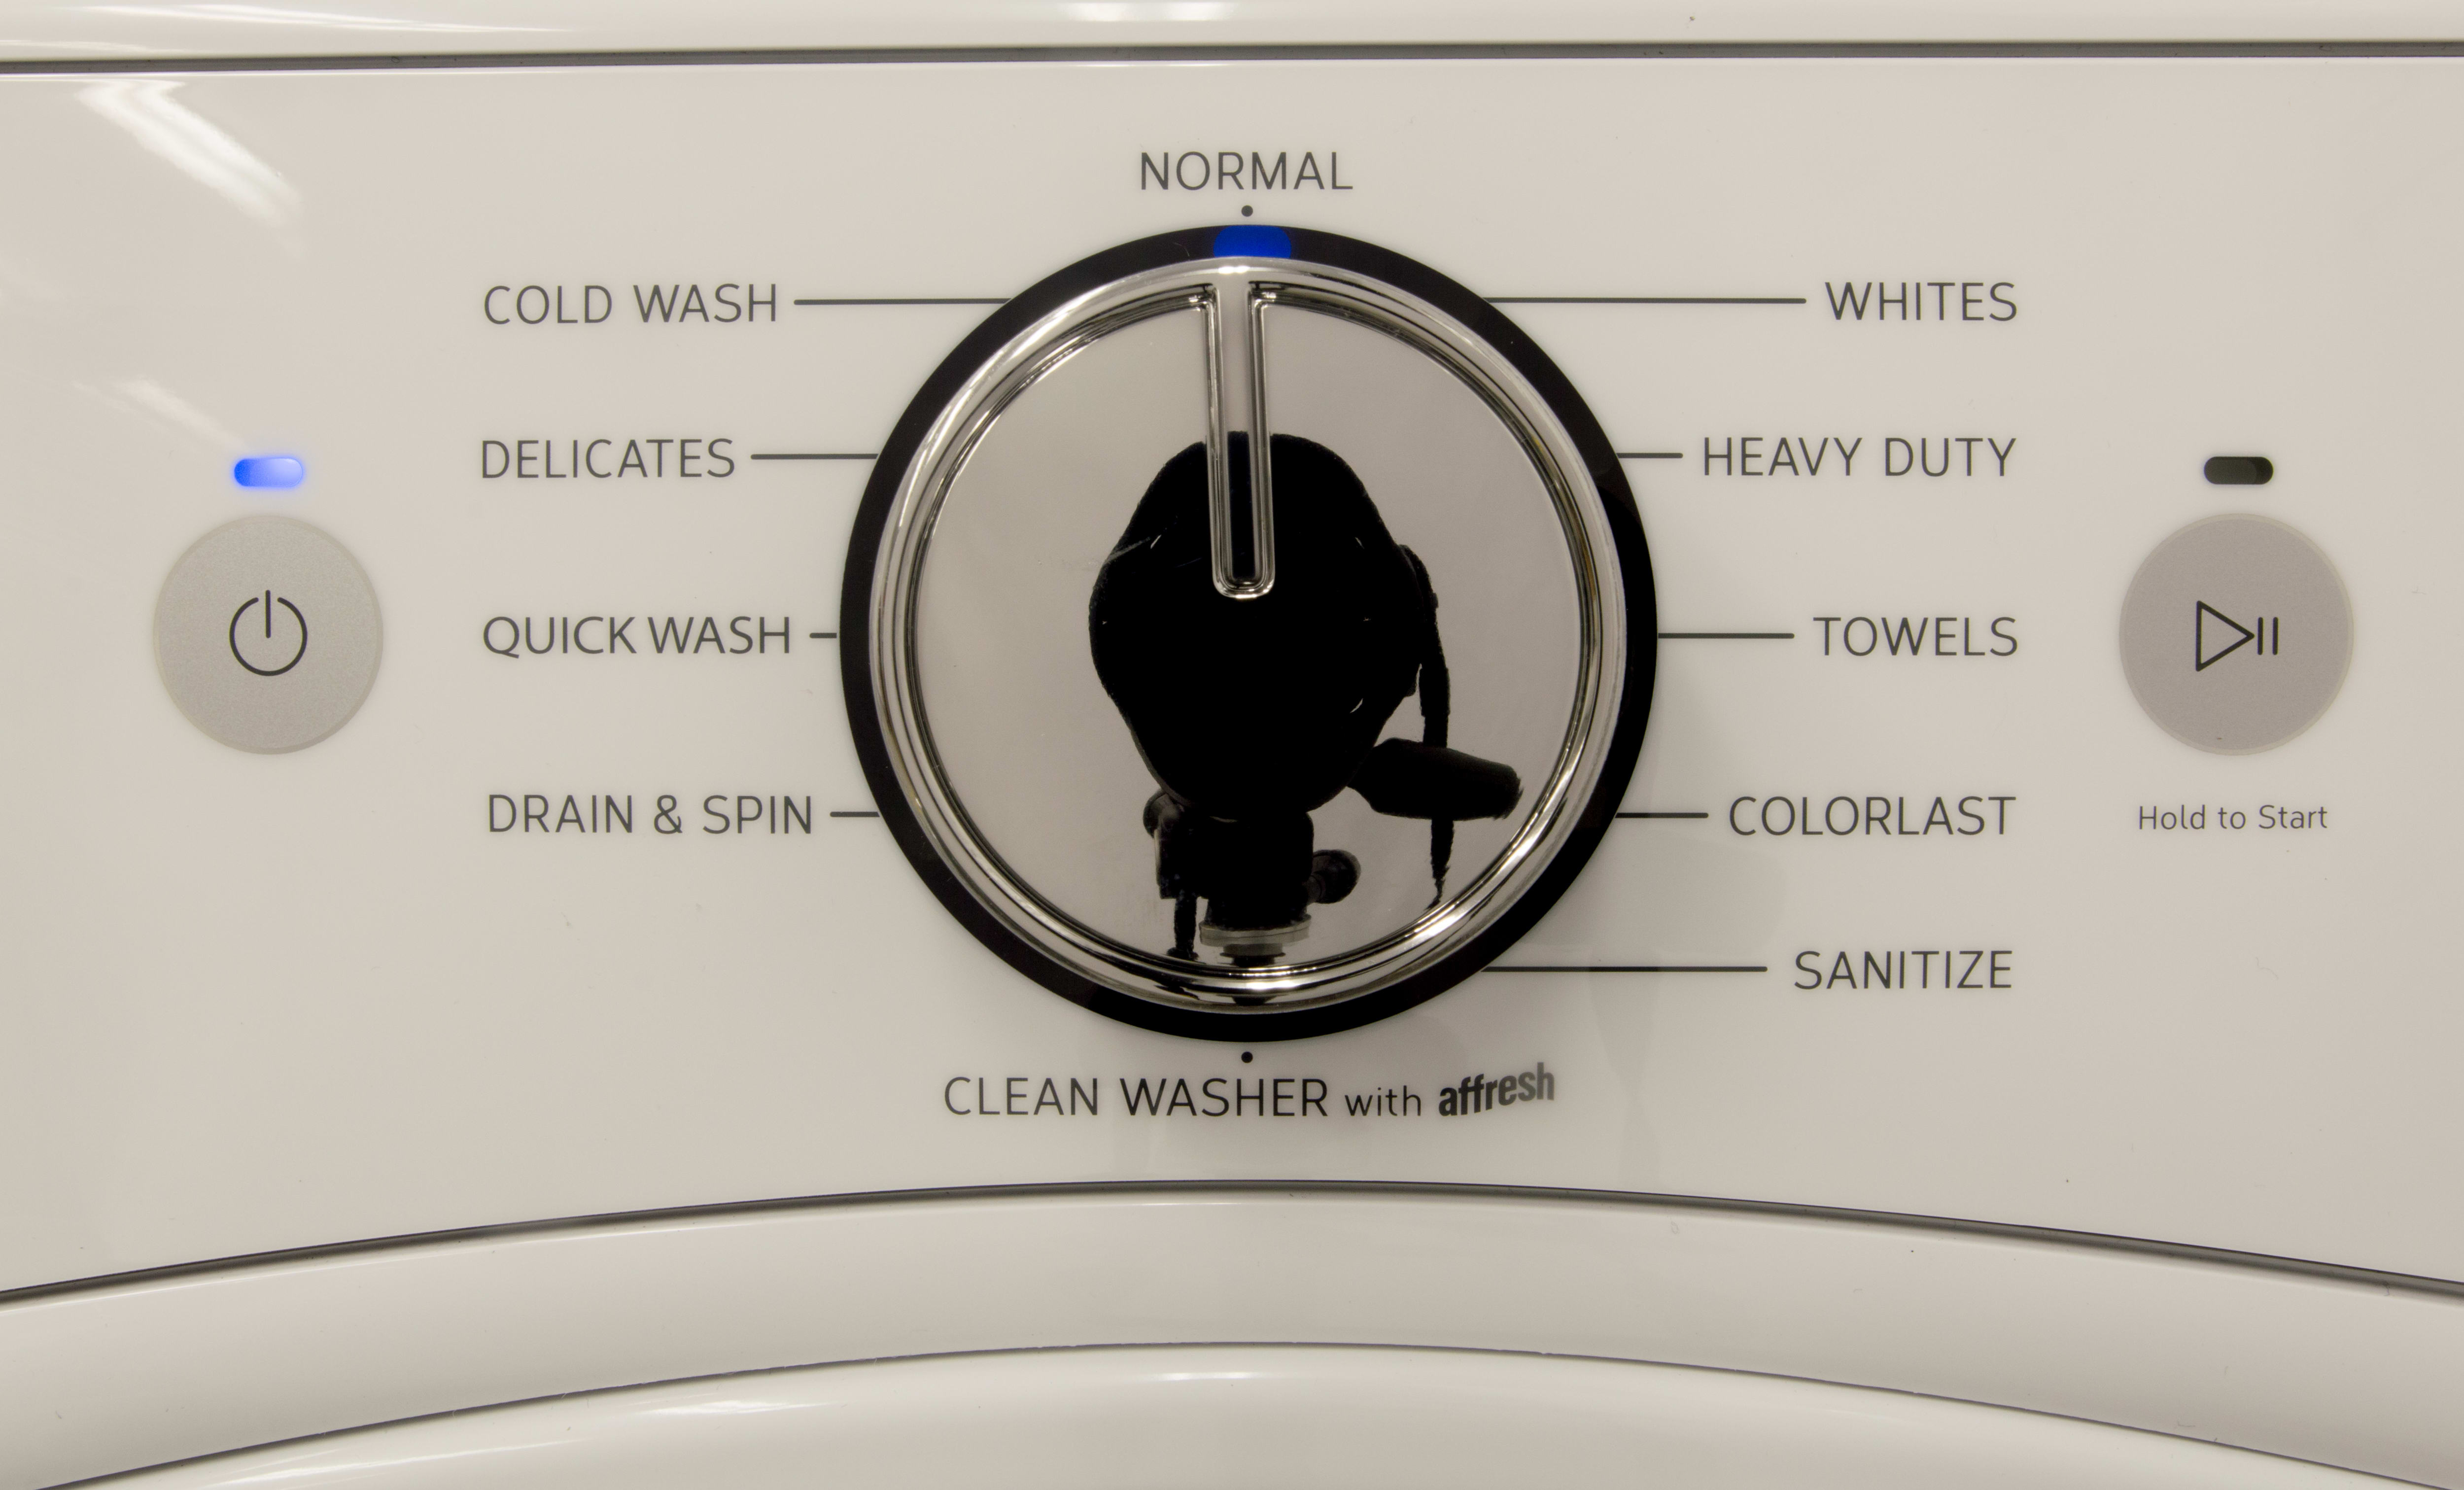 We appreciated the large cycle selection.  Of note: the 123°F Sanitize and ColorLast.